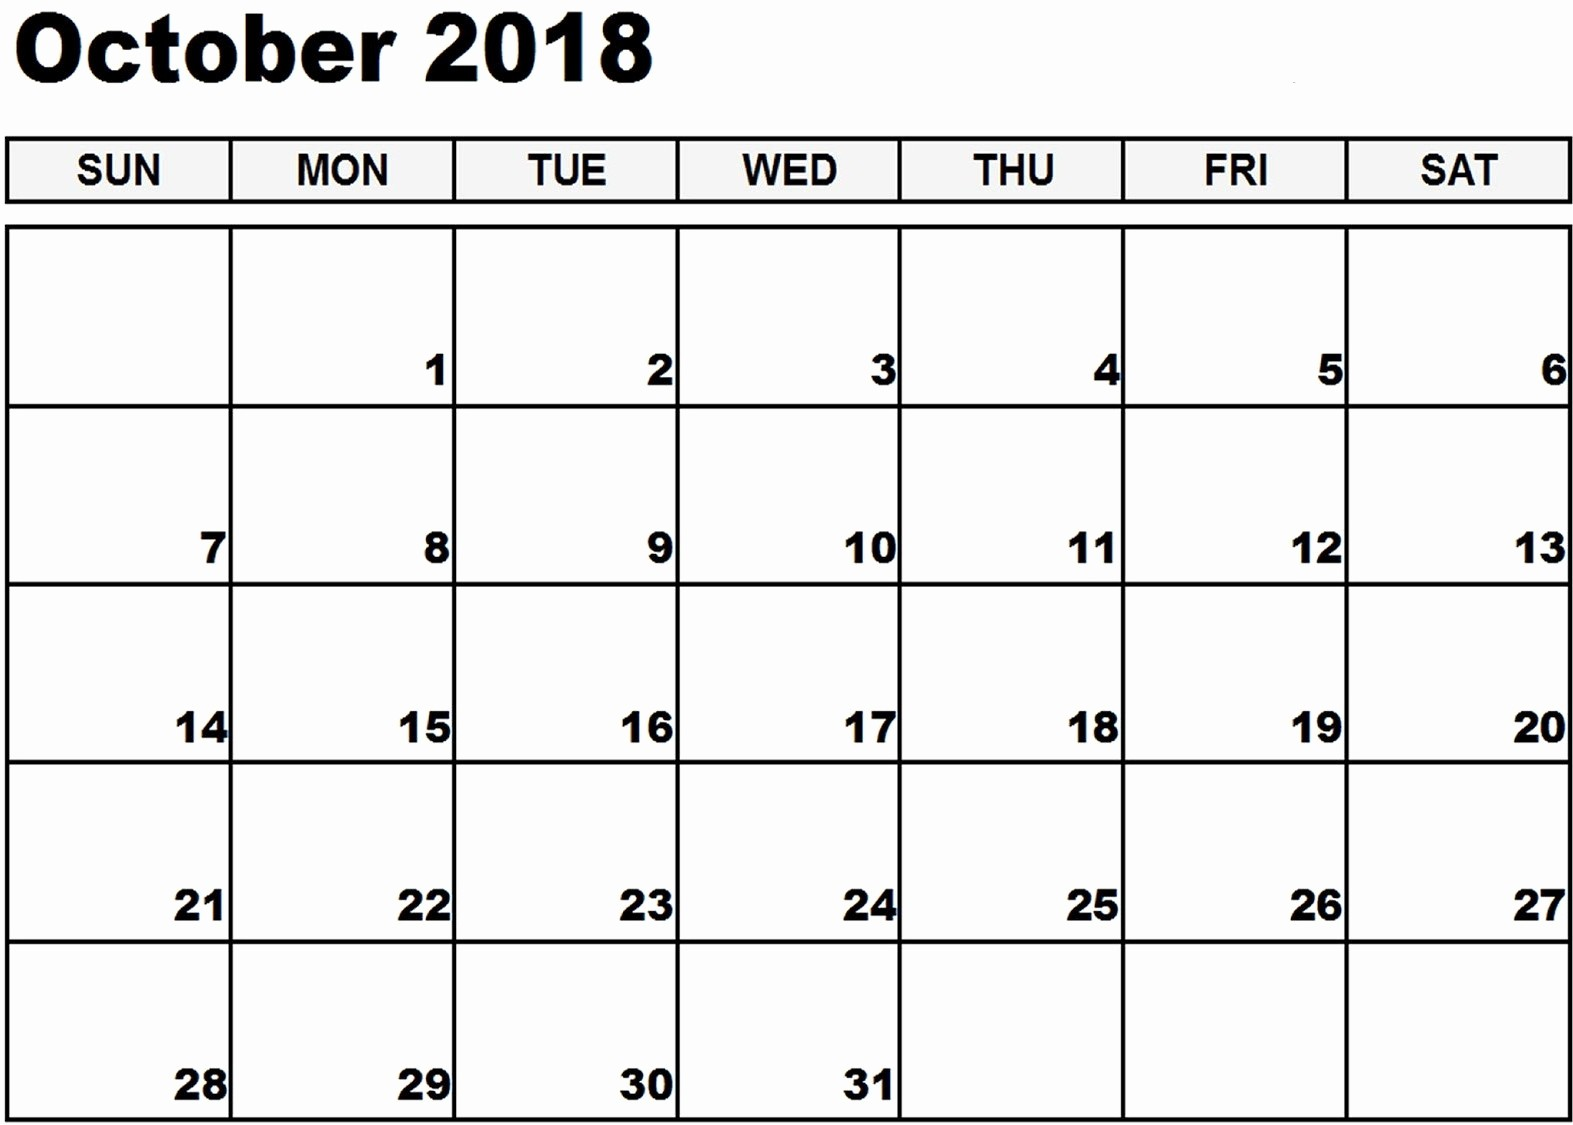 October 2018 Printable Calendar Word New Free Printable Calendar October 2018 Word – Printable 2018